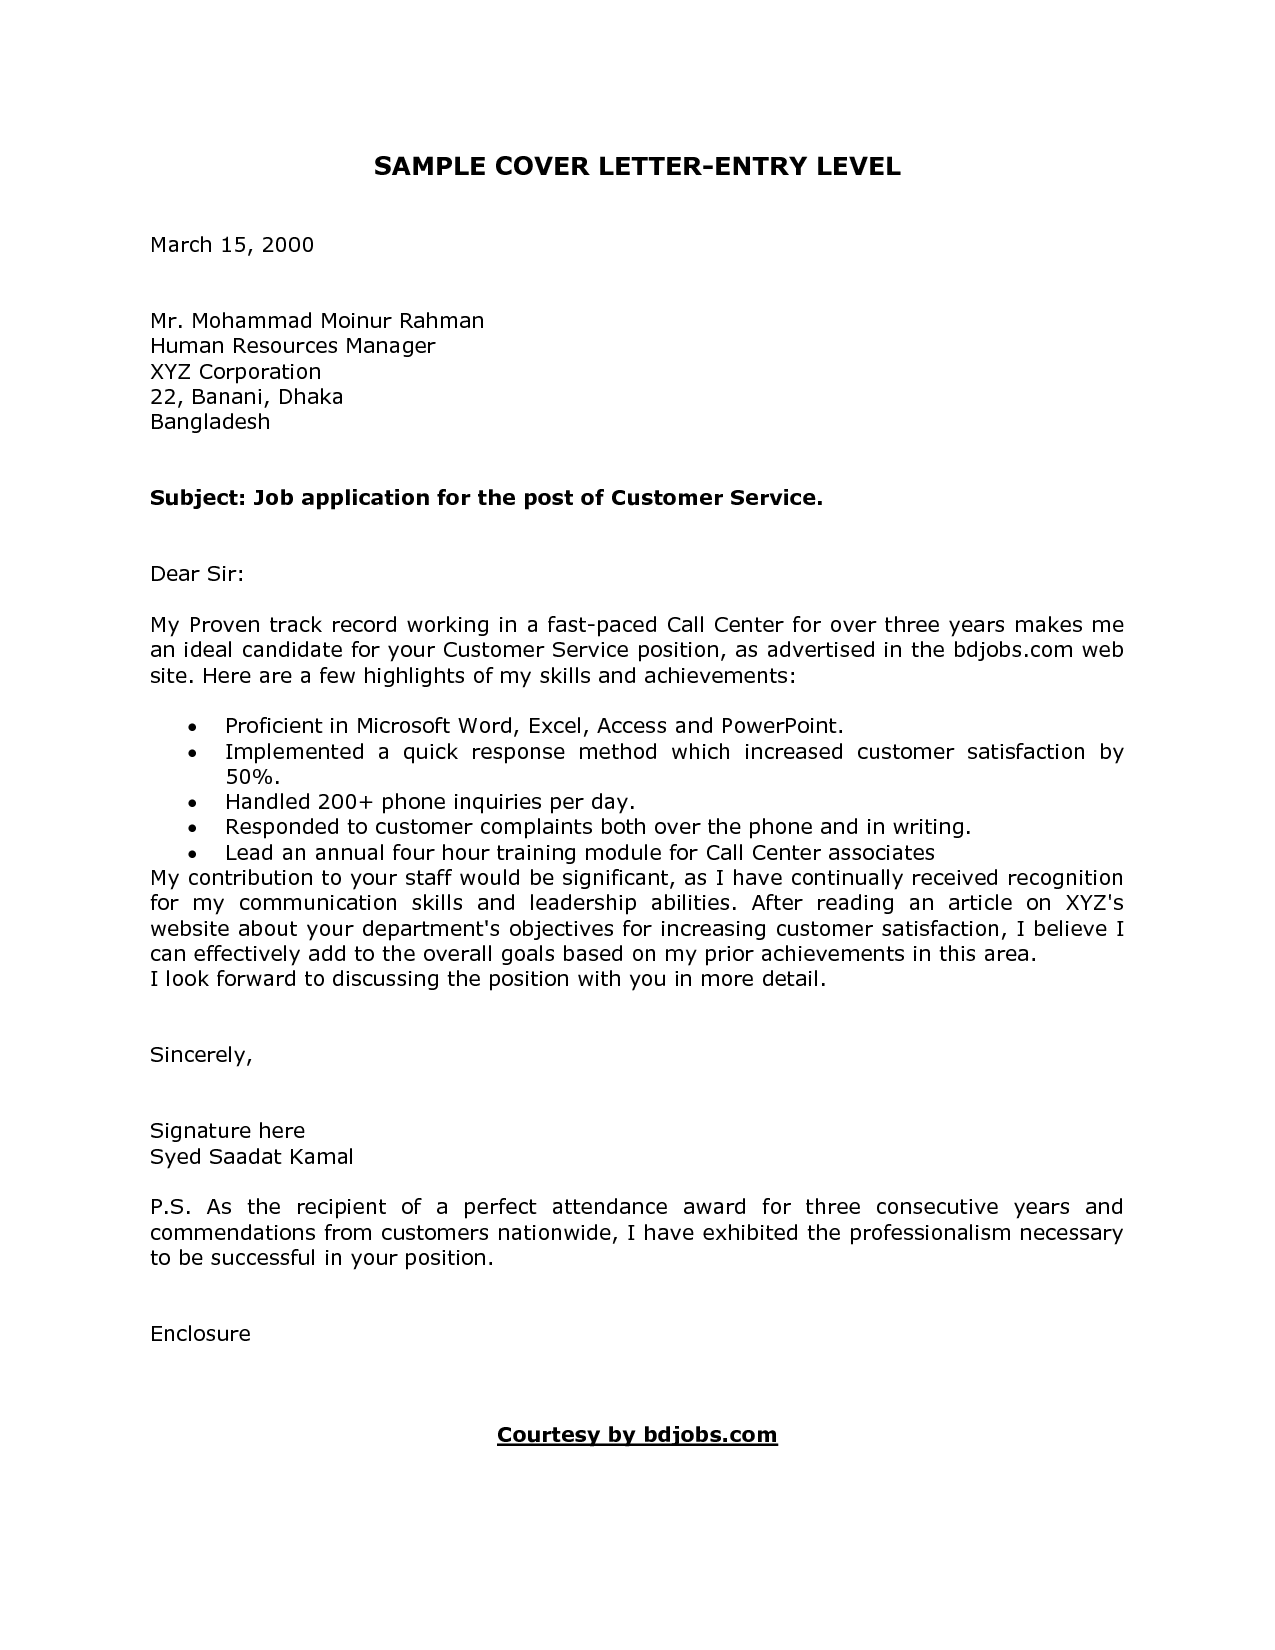 cover letter format creating executive samples resume free example - Sample Of Best Cover Letter